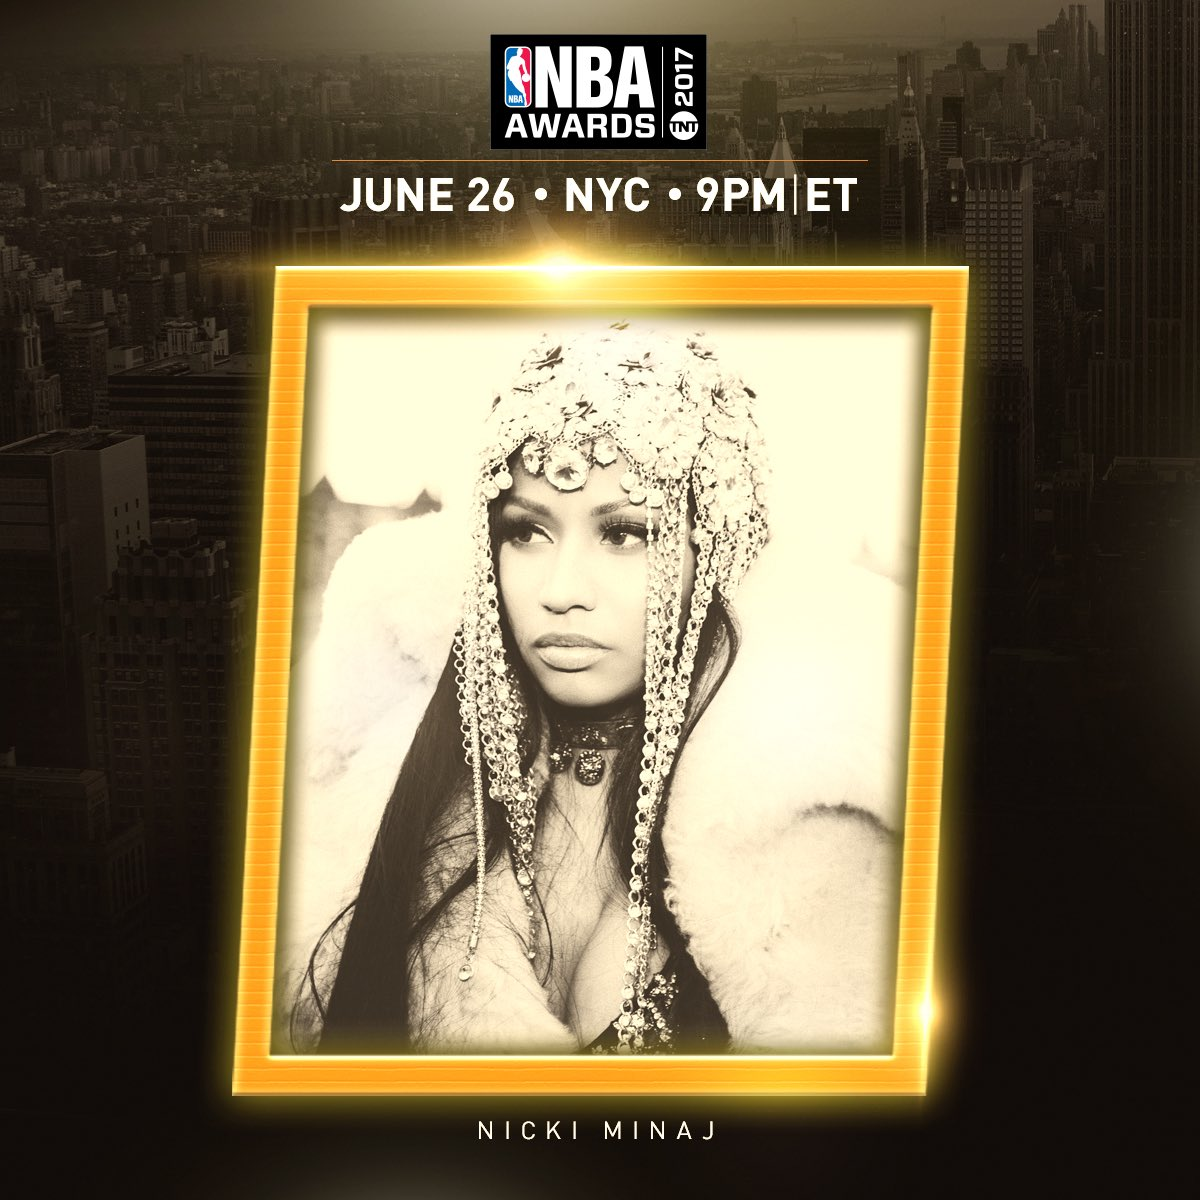 Performing @ the 1st ever #NBAAwards, hosted by Drake ~ June 26th on TNT 🏀 #SwishSwishBish